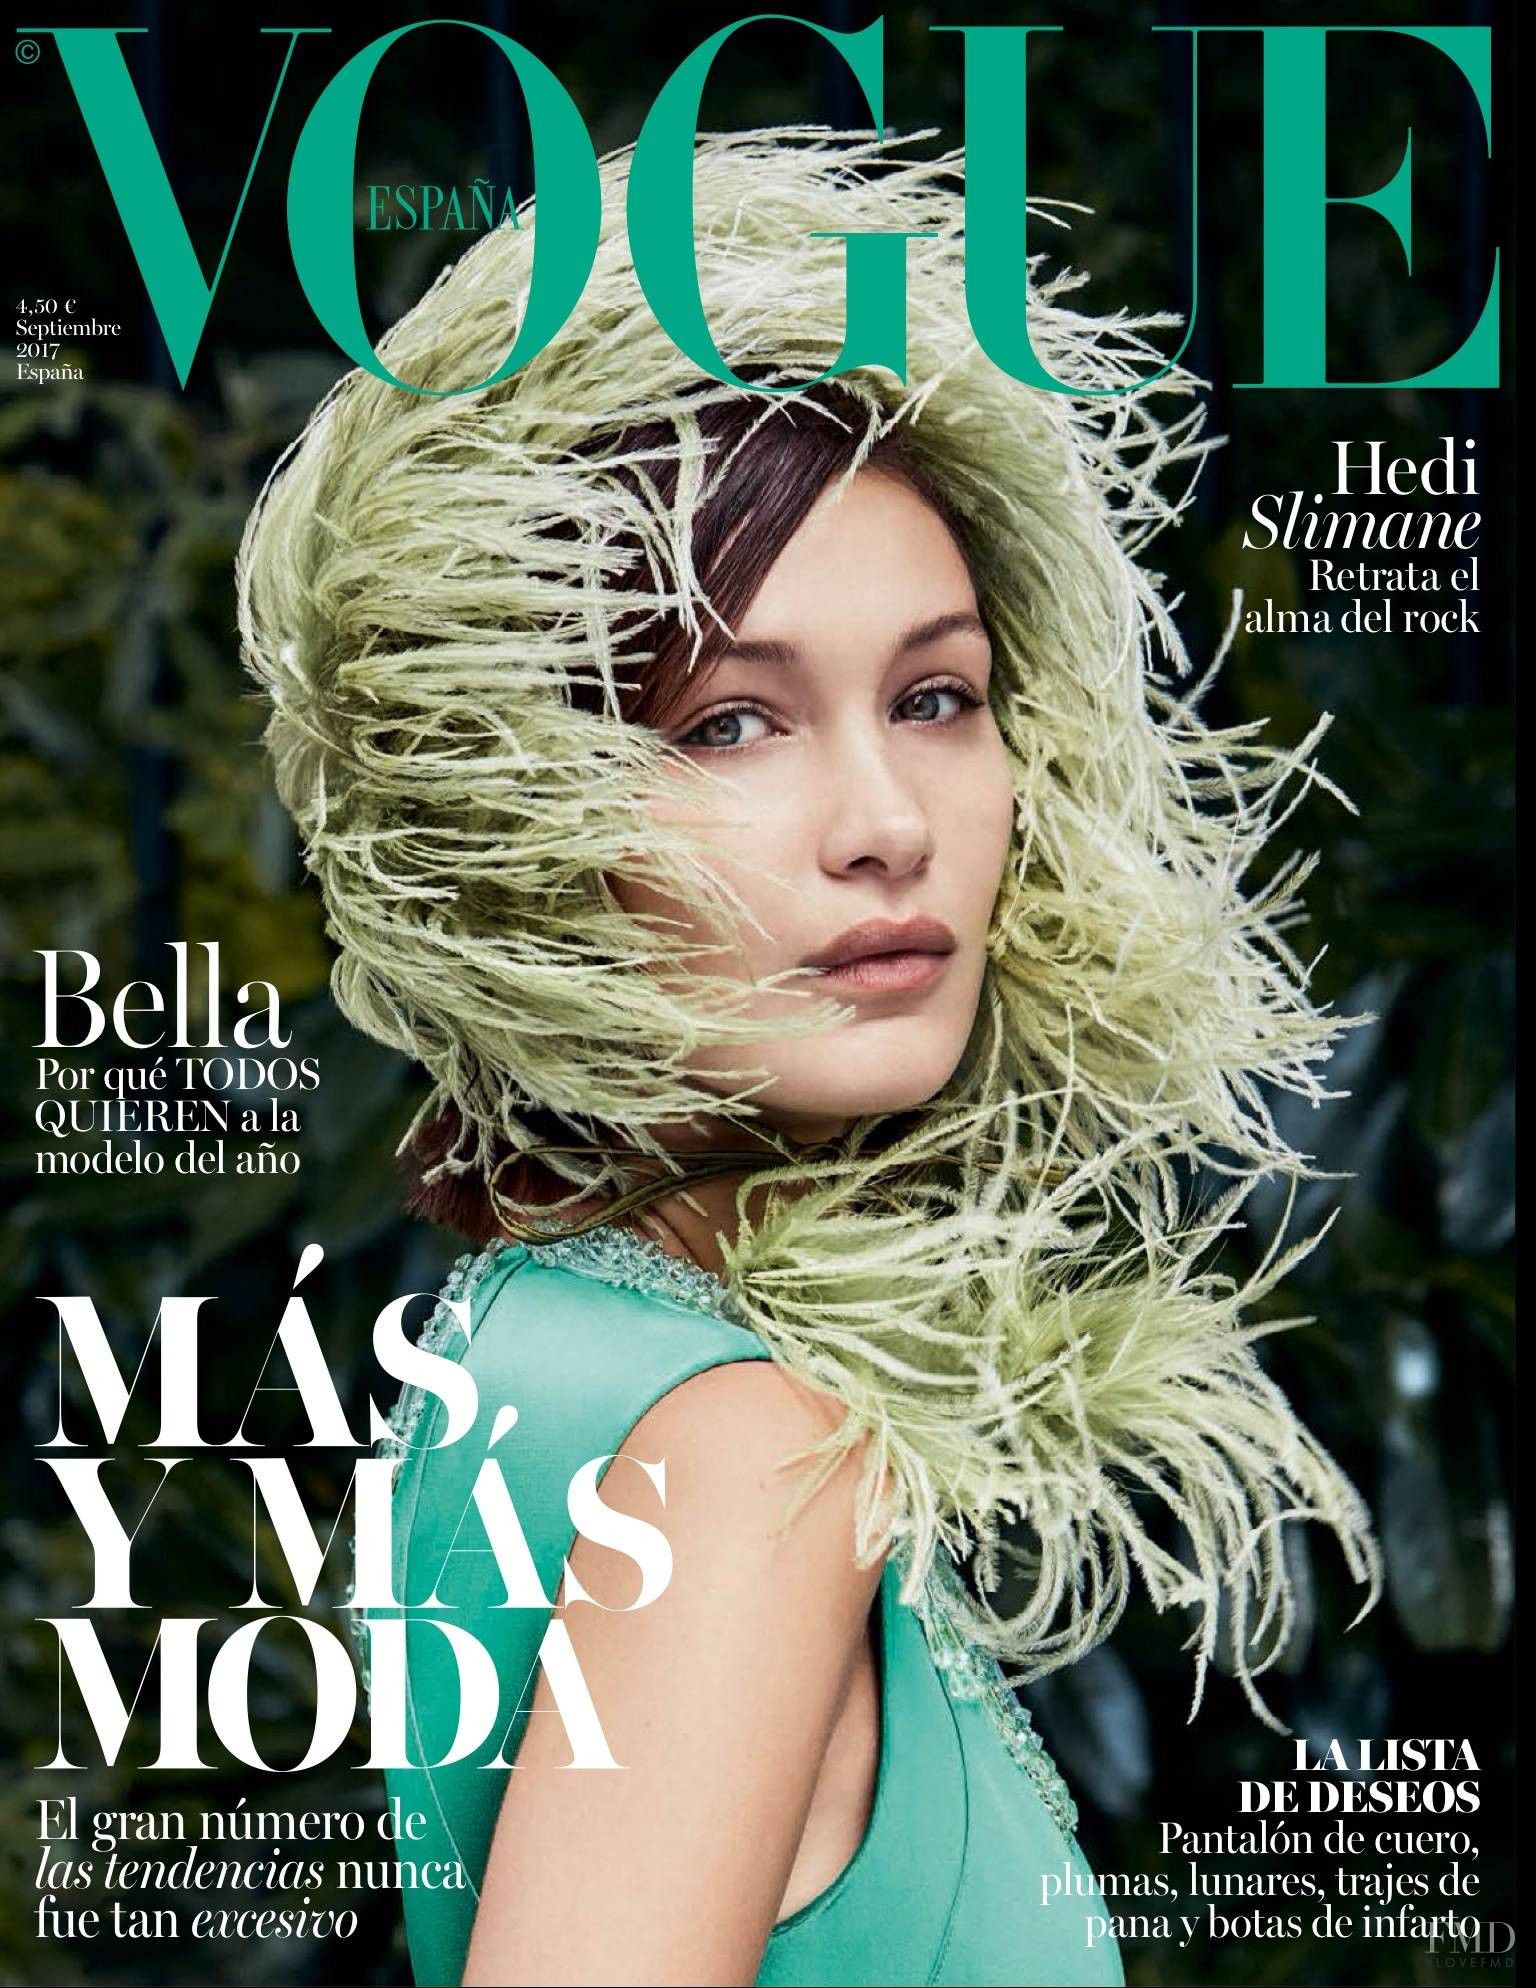 4eafc1bfd2b71 Bella Hadid featured on the Vogue Spain cover from September 2017 ...